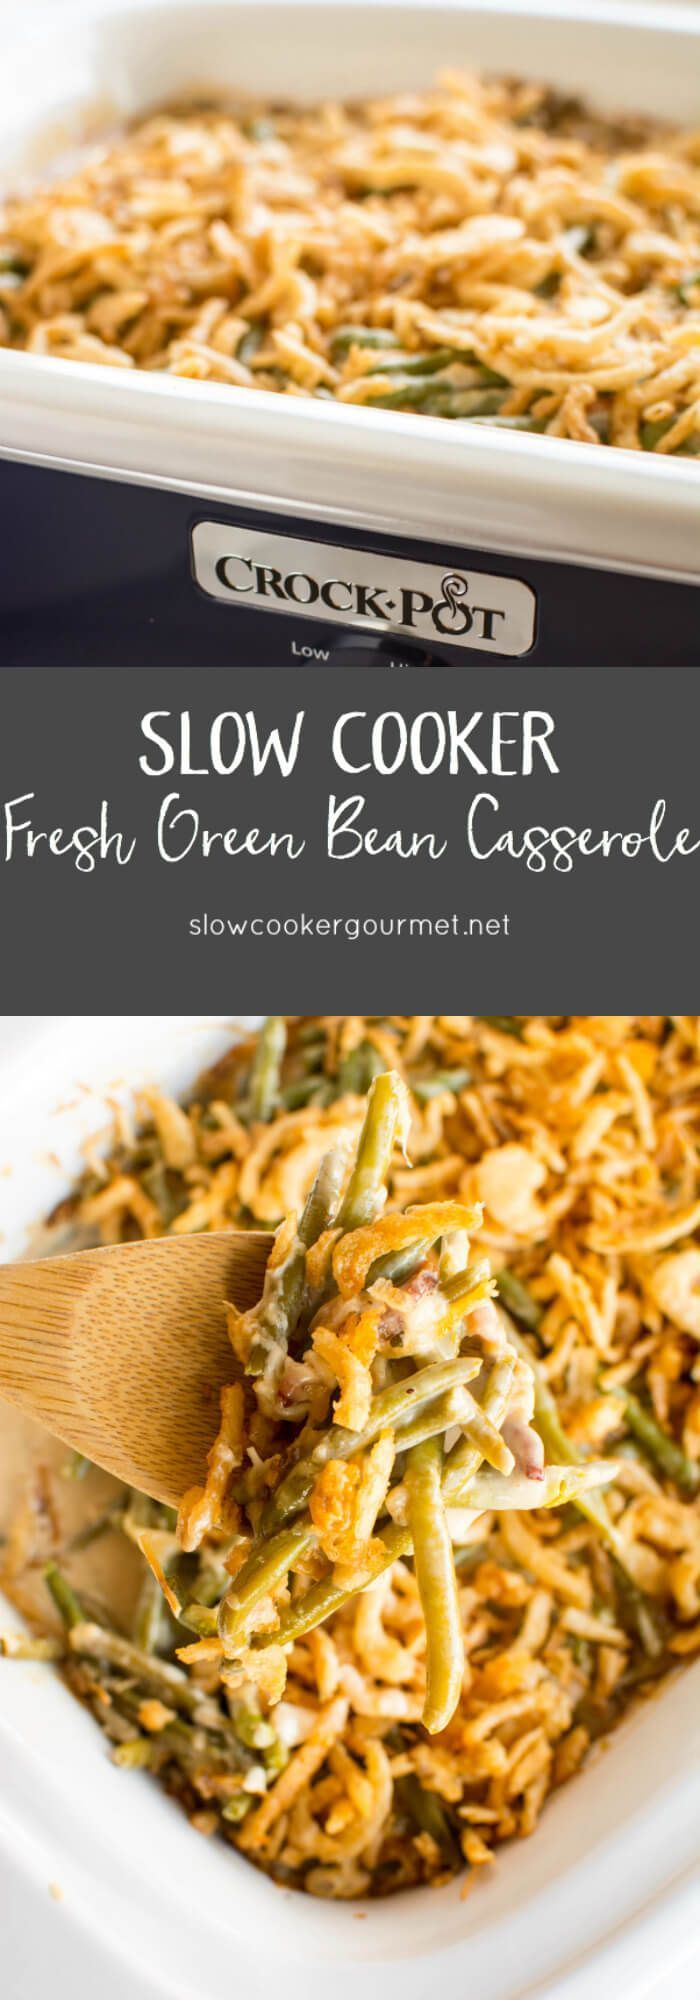 Slow Cooker Green Bean Casserole uses premium frozen green beans and a homemade sauce for a healthier and even more delicious holiday side dish!